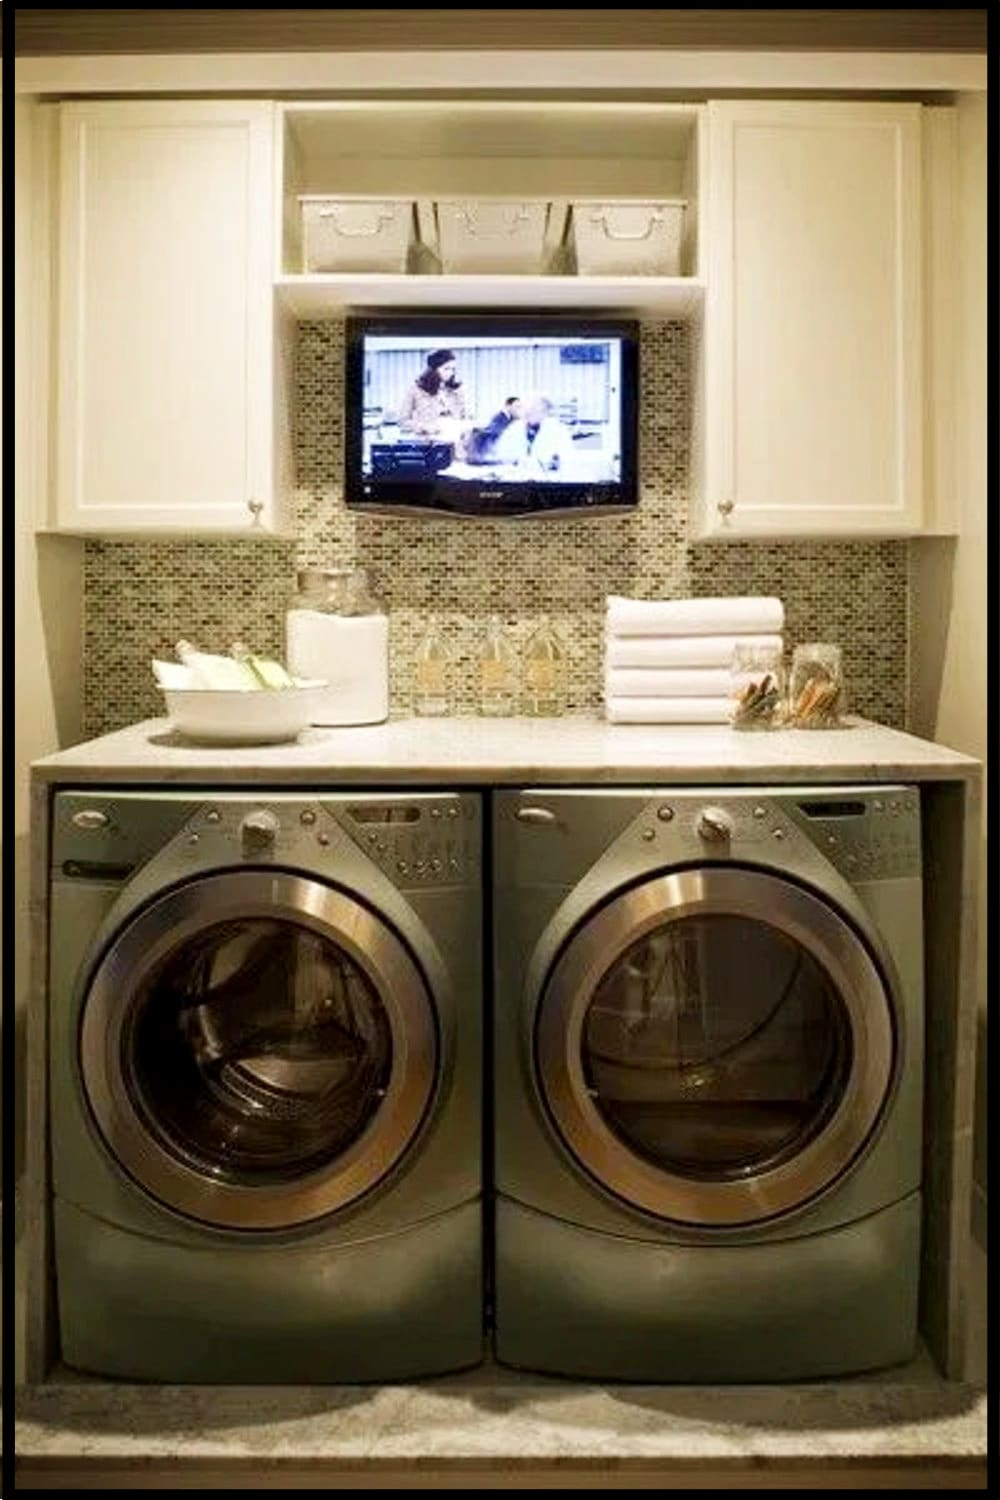 Simple Laundry Room Design and more laundry room ideas - clever and cute small laundry room ideas on a budget